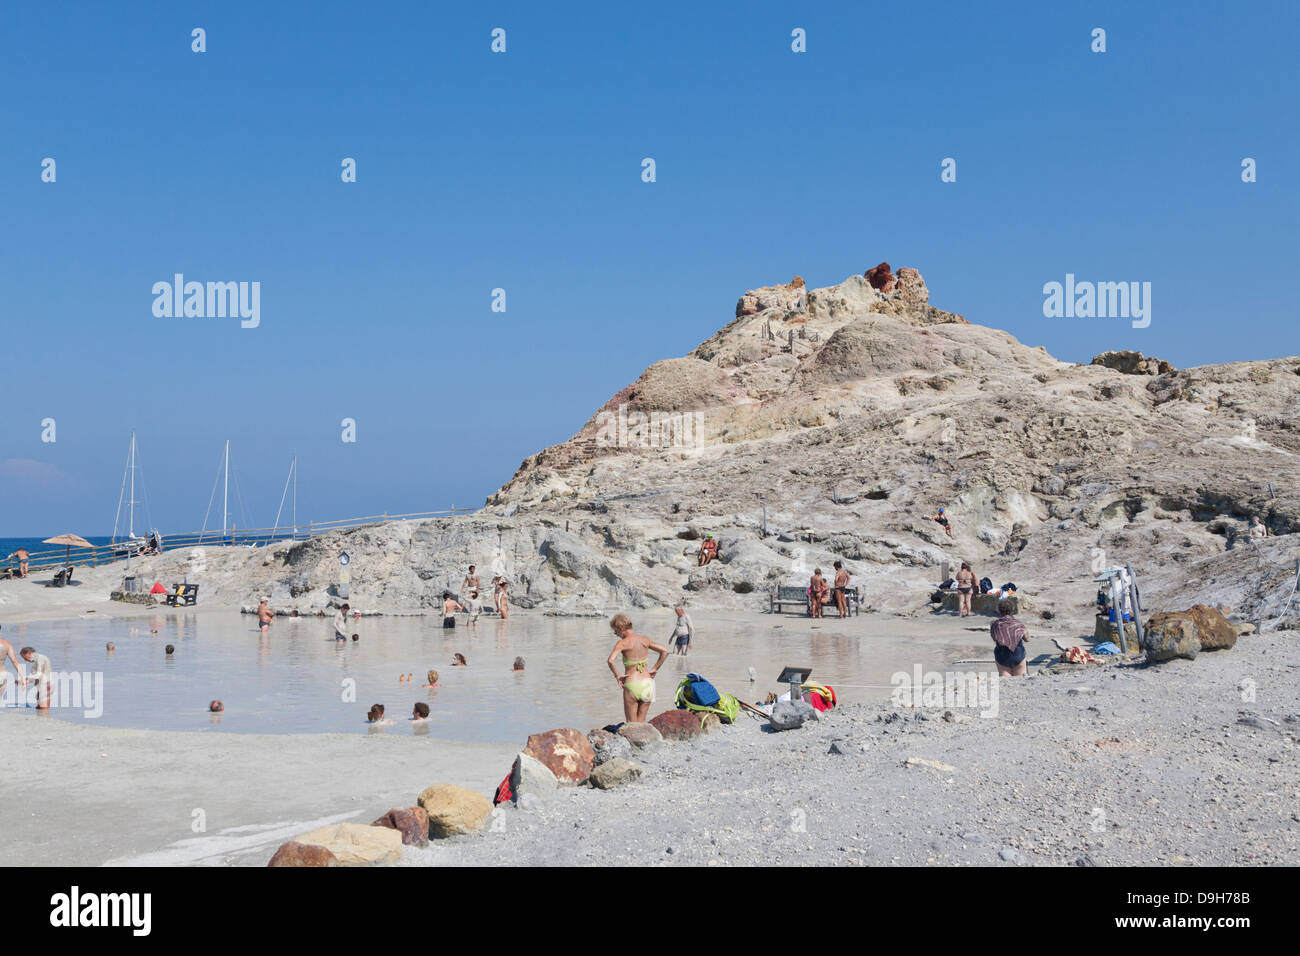 Fanghi, Mud Baths, Vulcano, Aeolian Islands, Italy - Stock Image